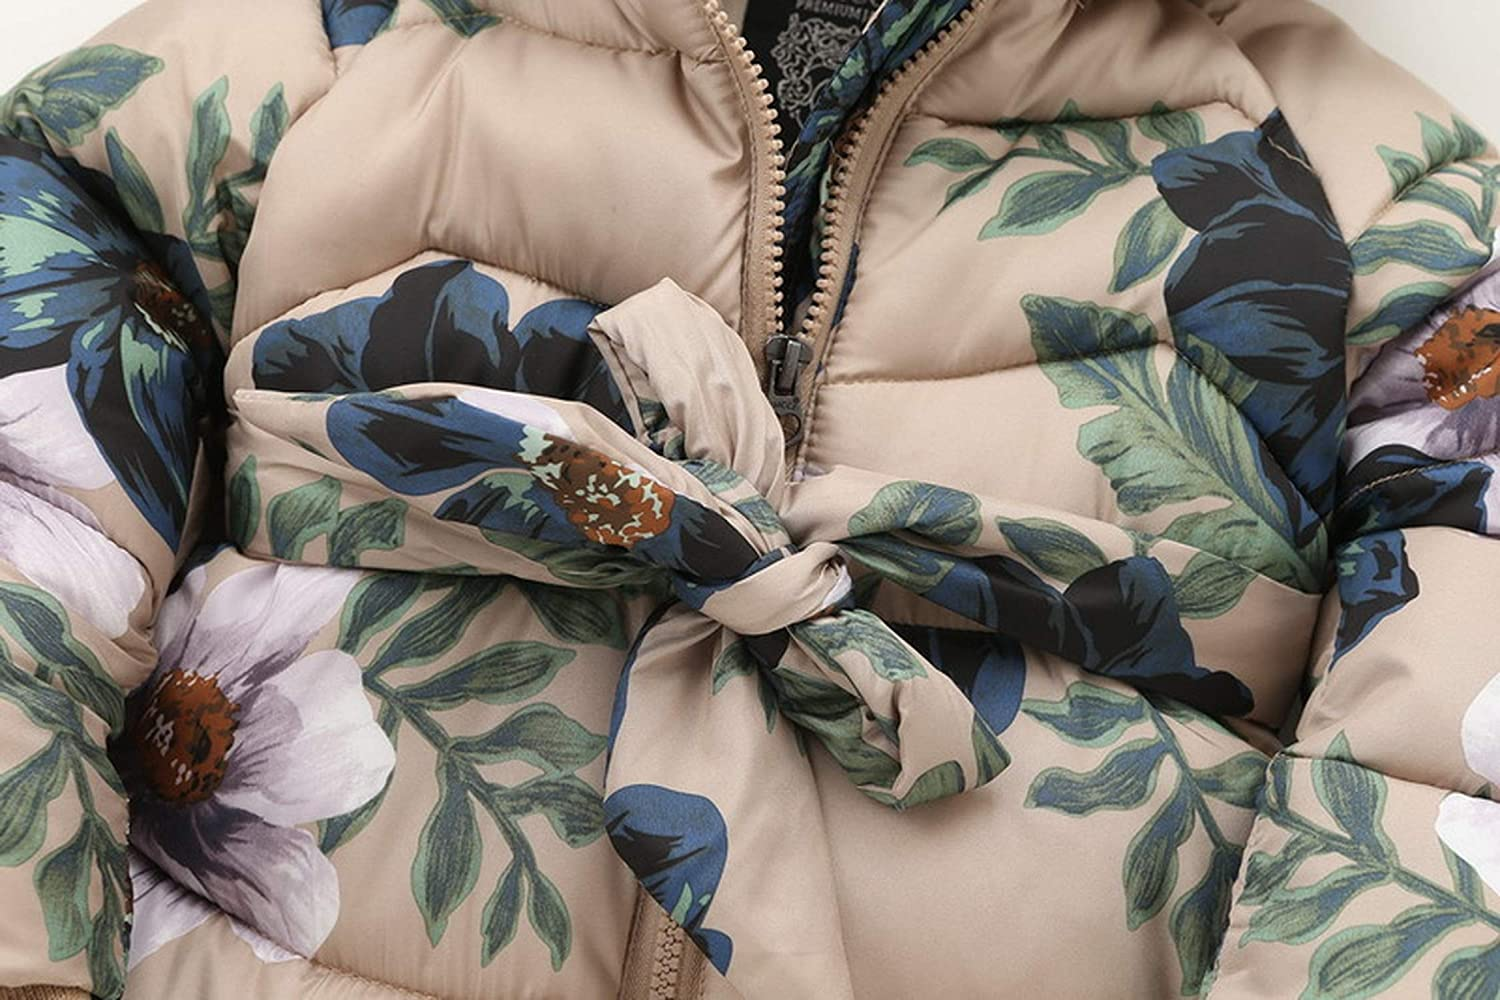 Kids Winter Jackets for Girls Casual Hooded Zipper Outerwear Girls Coat Cotton This is not a harm